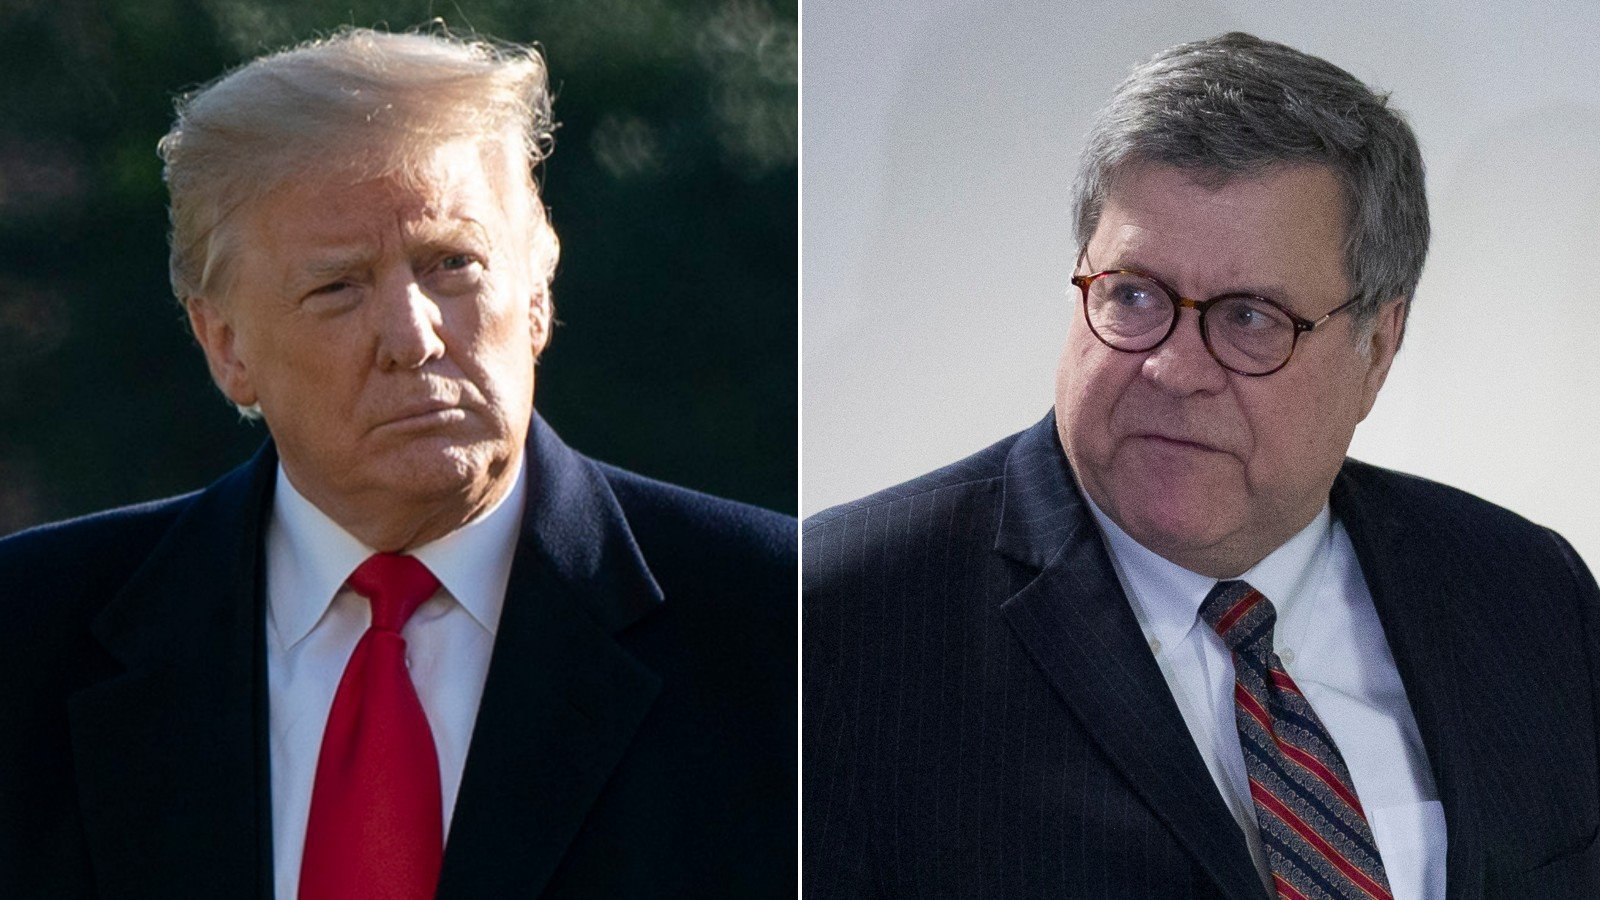 Attorney General William Barr on Capitol Hill as Republicans await word from Trump on guns